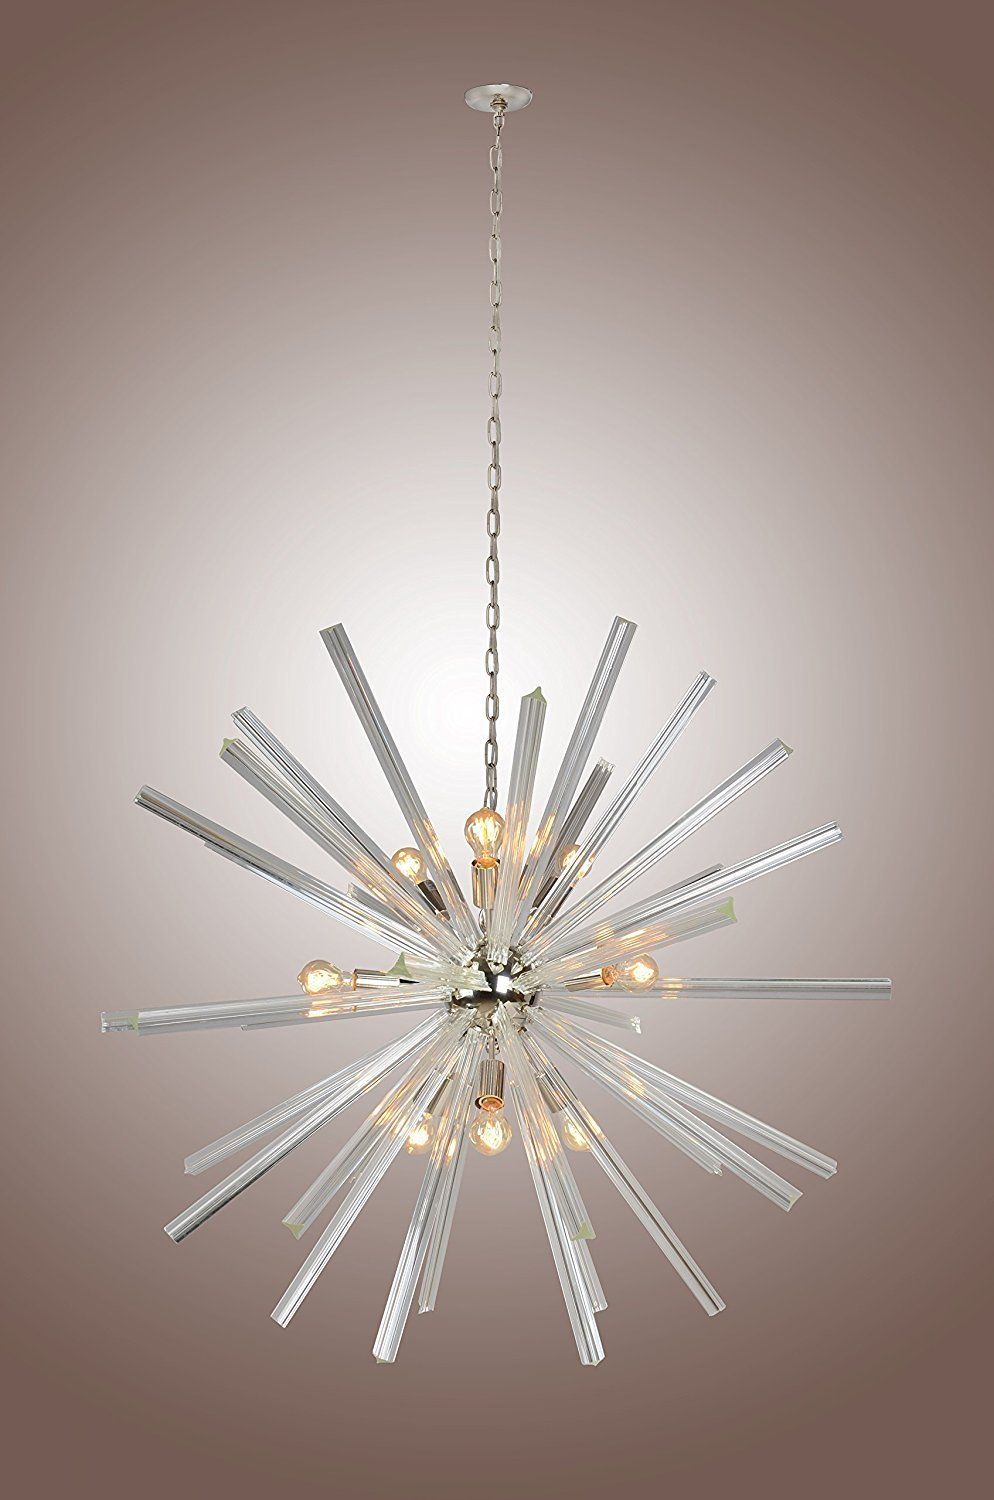 46 inch crystal bar ceiling pendant fixtures chandelier sputnik 46 inch crystal bar ceiling pendant fixtures chandelier sputnik axis clear glass aloadofball Image collections